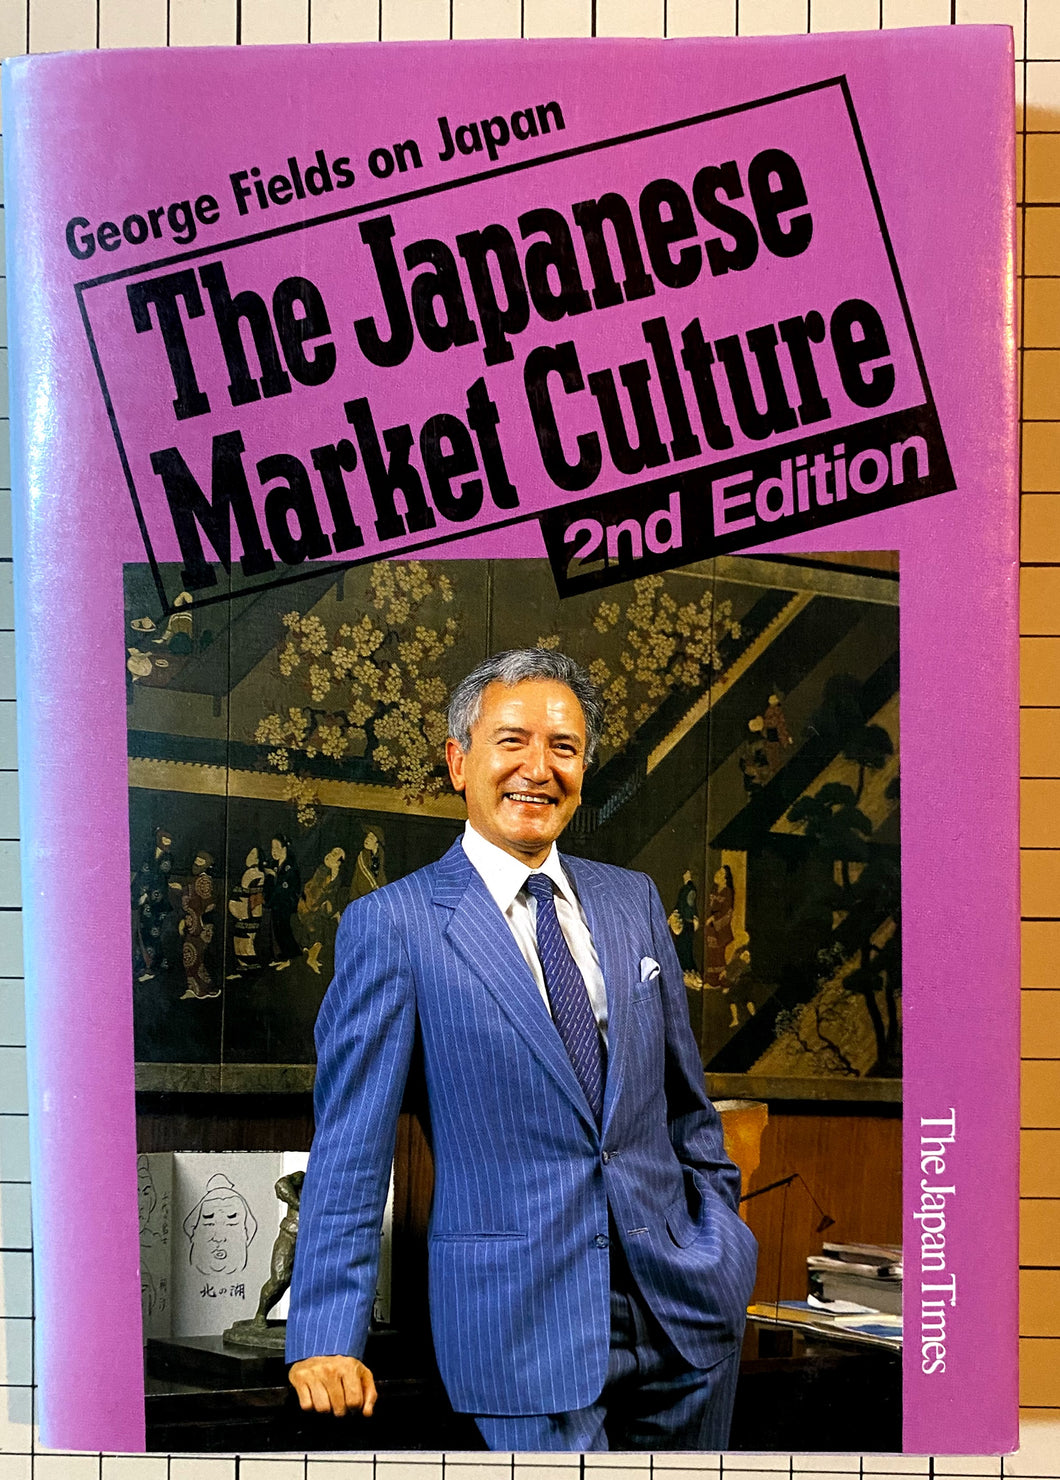 Japanese Market Culture Edition : George Fields